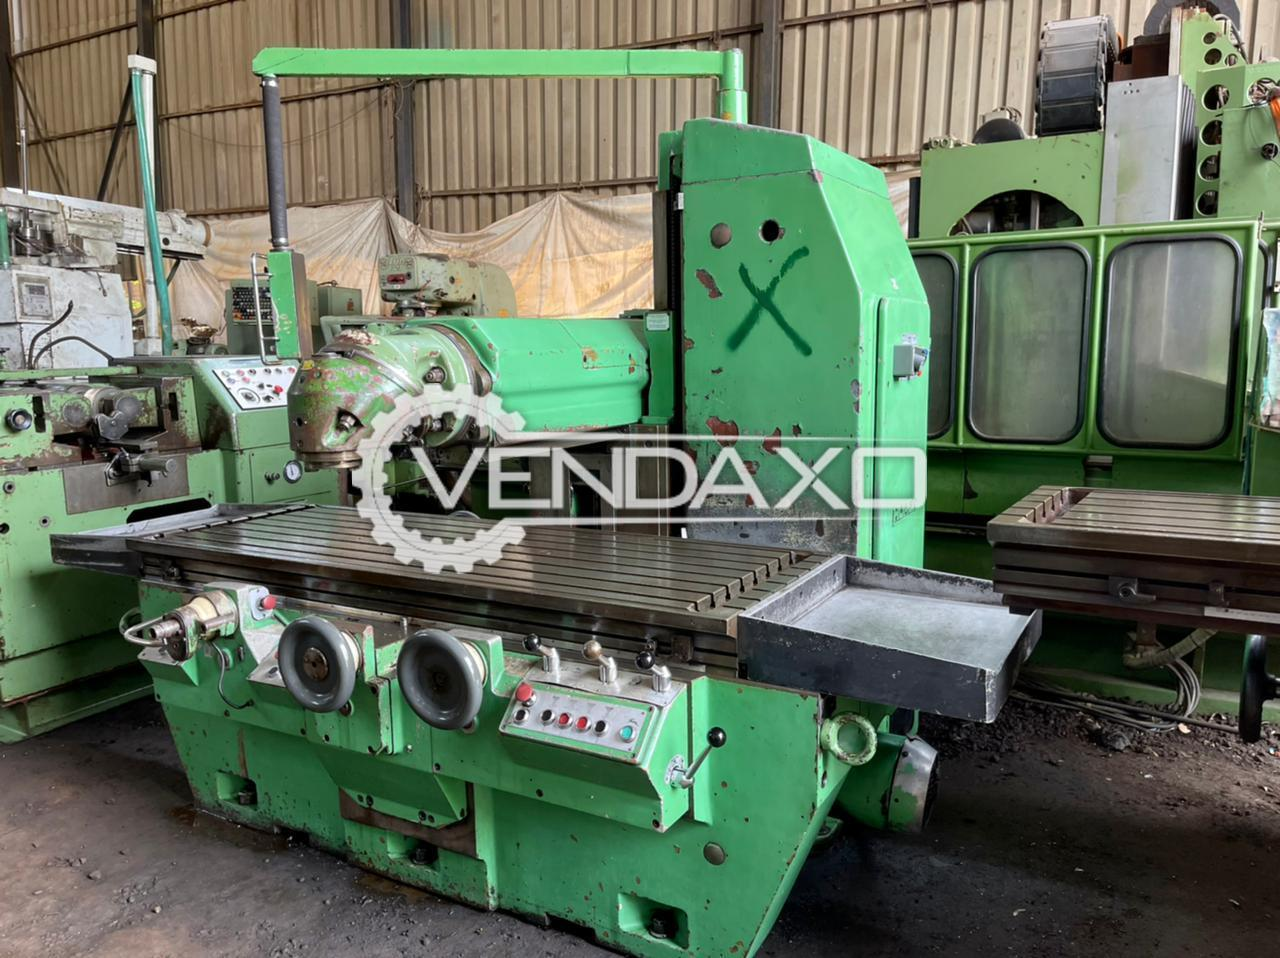 Huron PU771 Bed Milling Machine - Table Size - 2200 x 700 mm